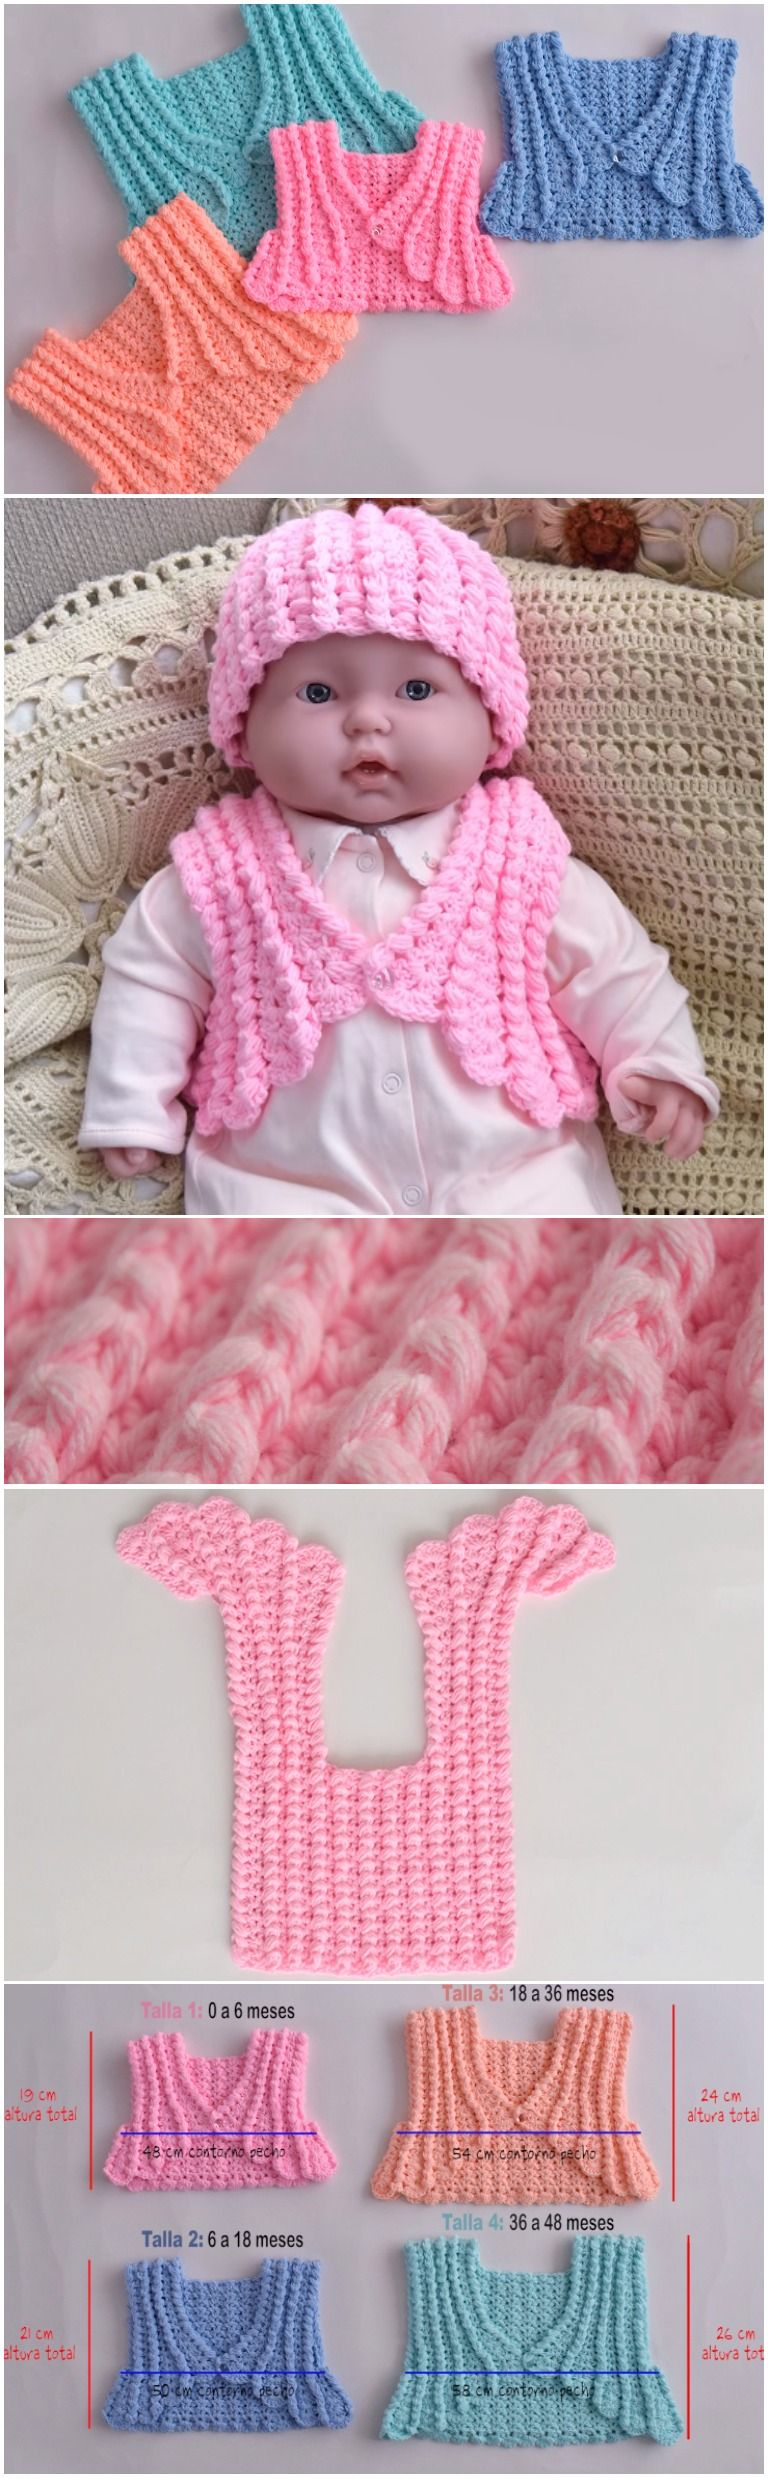 Crochet Colorful Baby Jacket Step By Step | Crochet | Pinterest ...